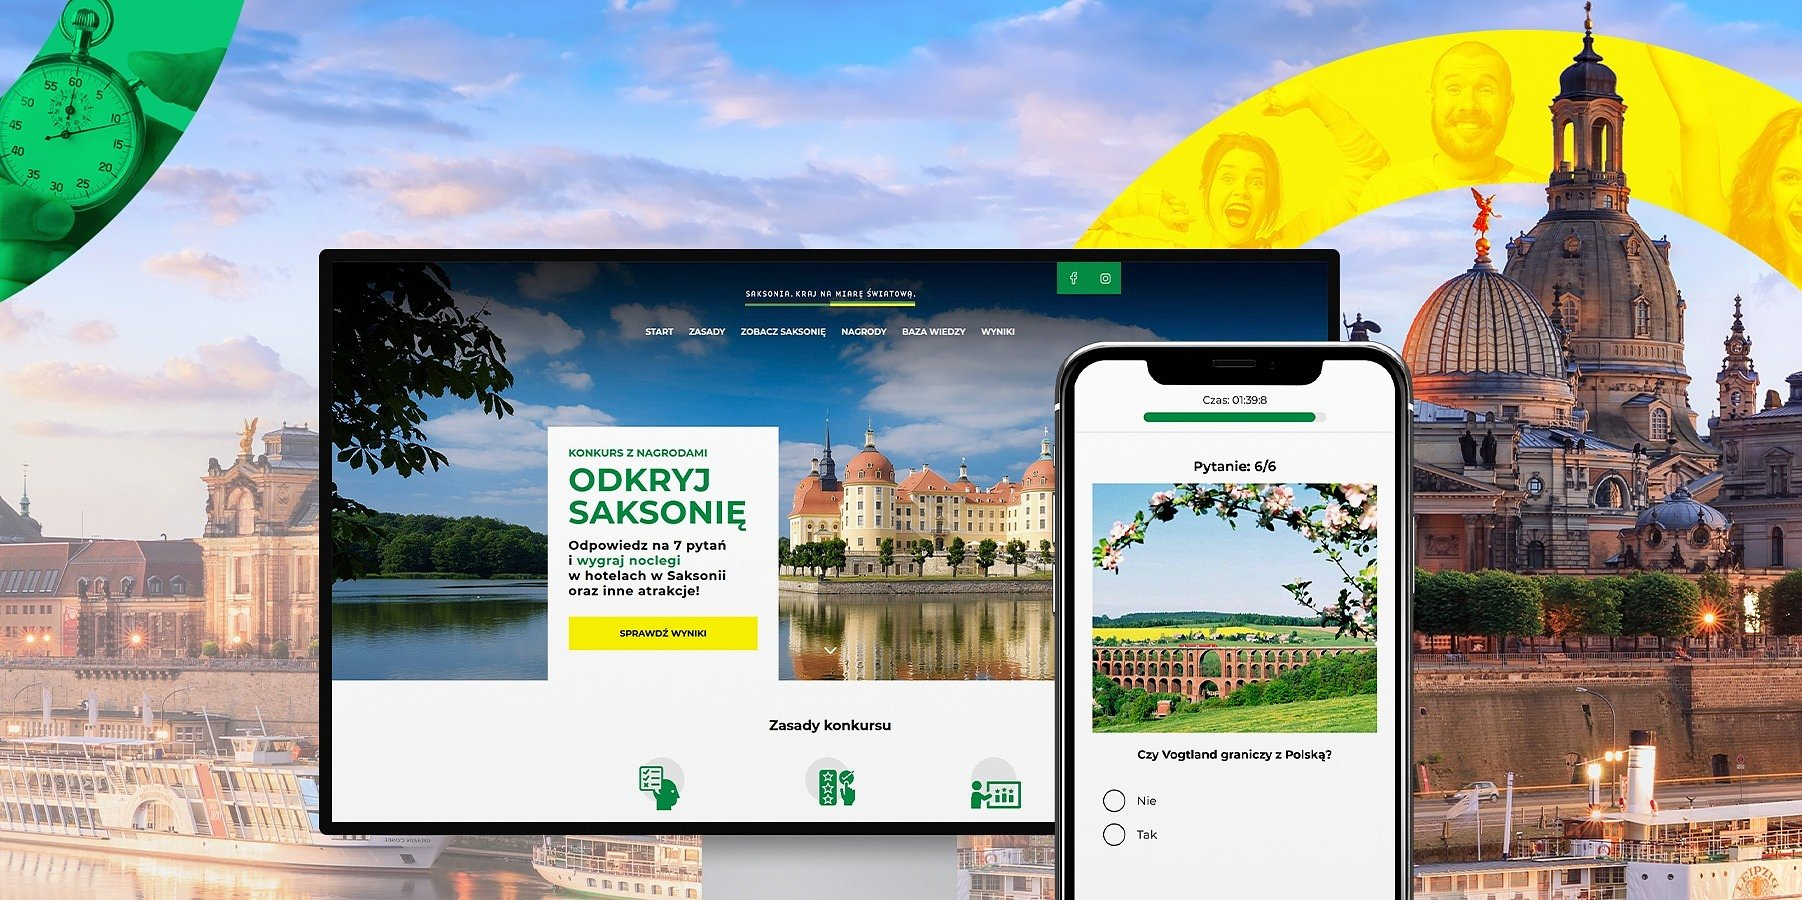 Nationwide knowledge contest about Saxony.